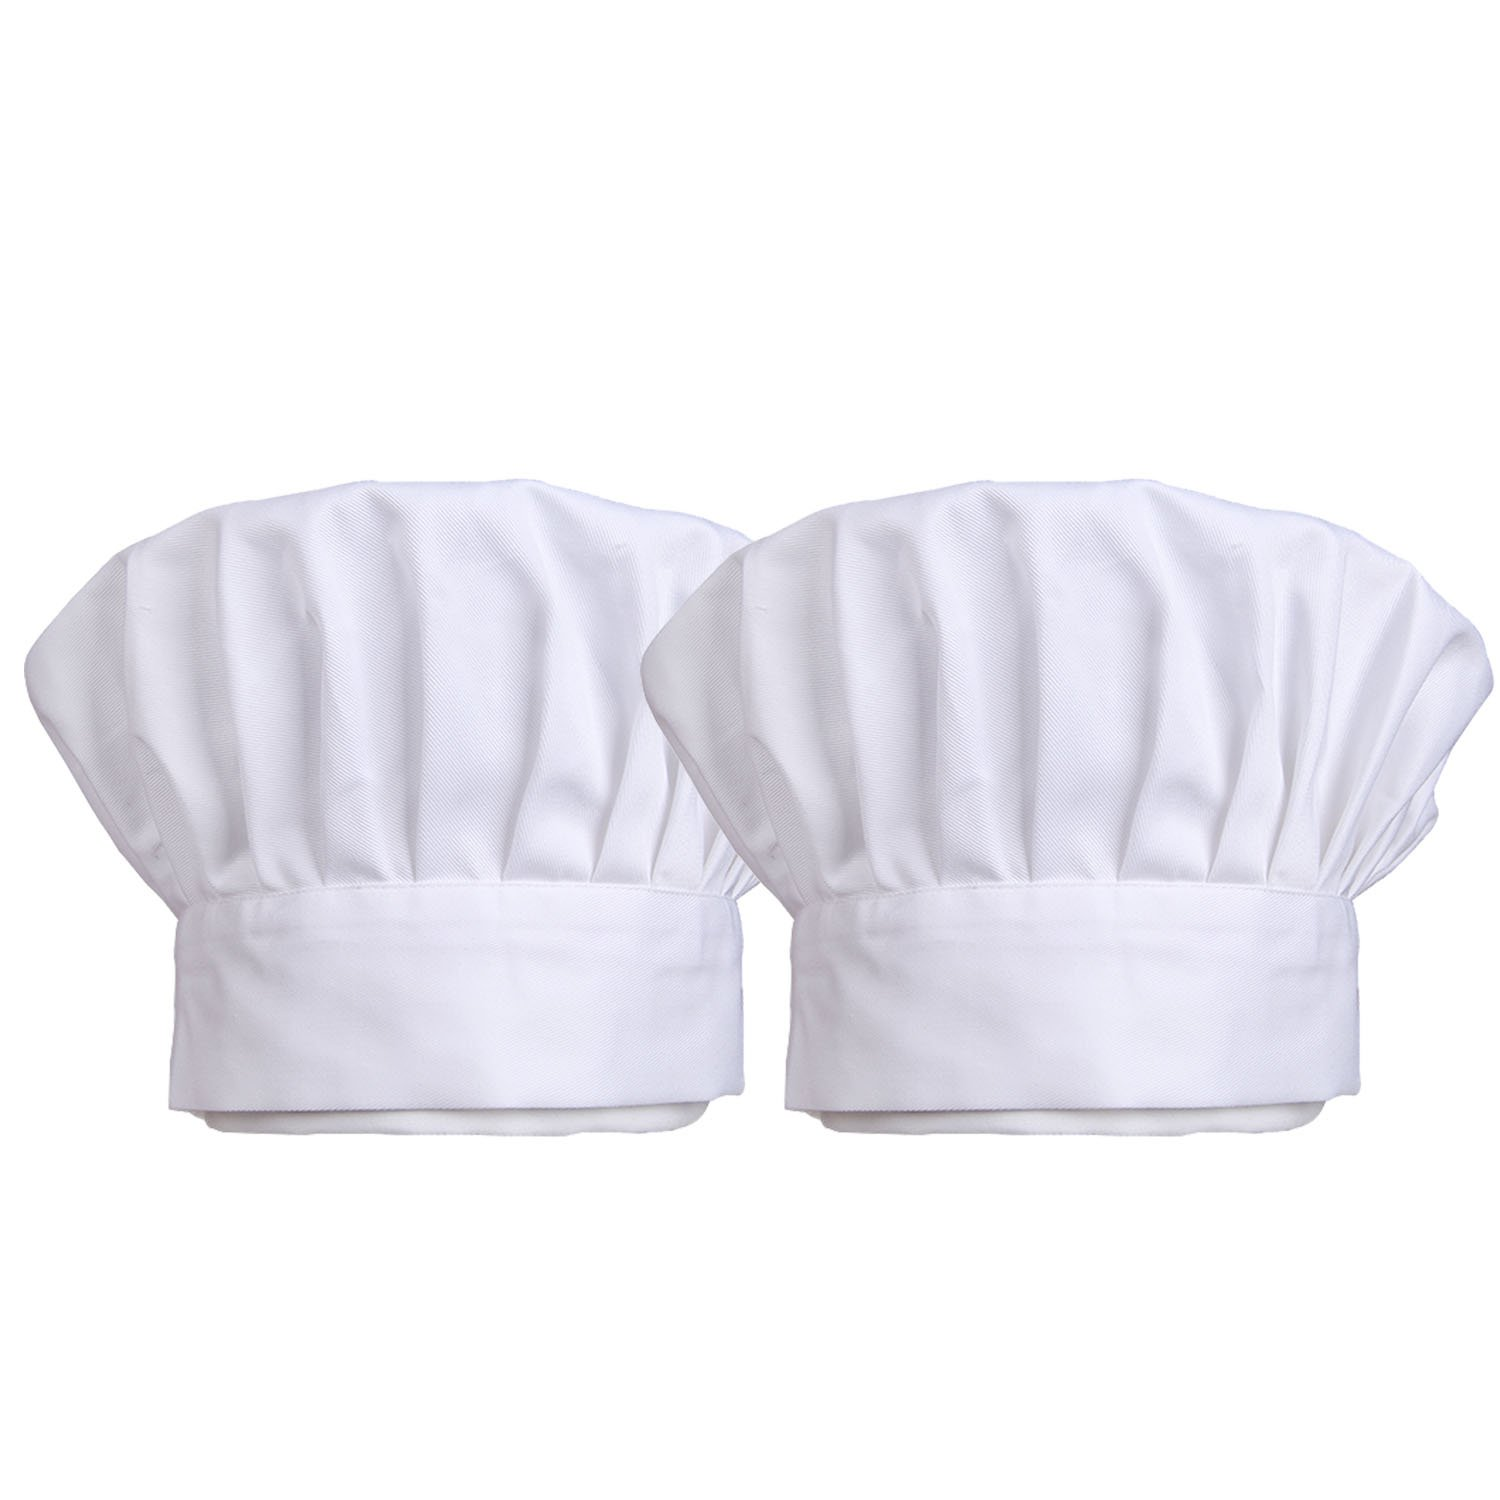 TraderPlus Chef Hat Adjustable Elastic Baker Kitchen Cooking Chef Cap Set of 2